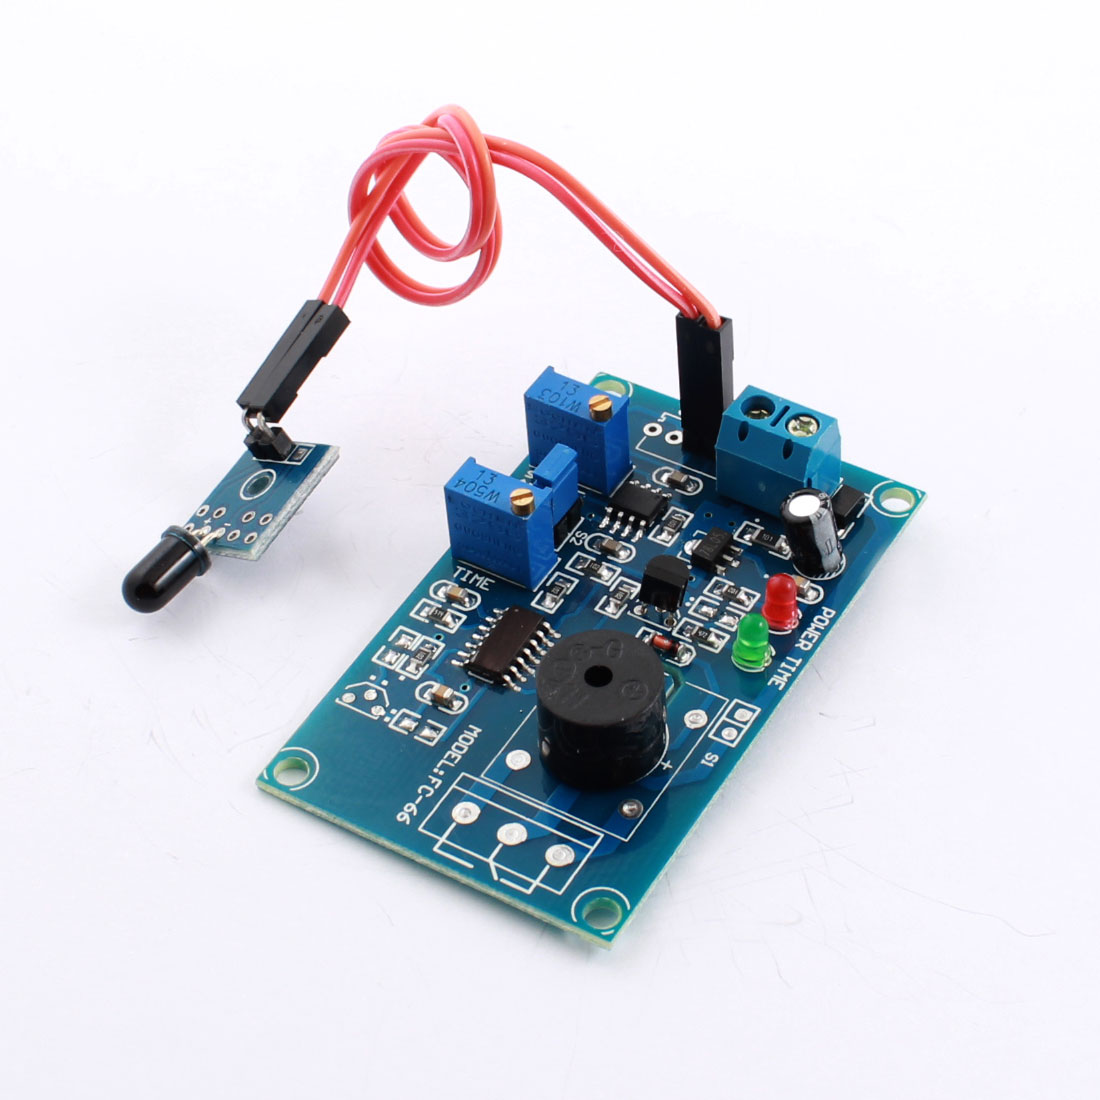 FC-66 DC12V Fire Fighting Light Detection Flame Sensor Infrared Receiver Alarm Buzzer Time Delay Module